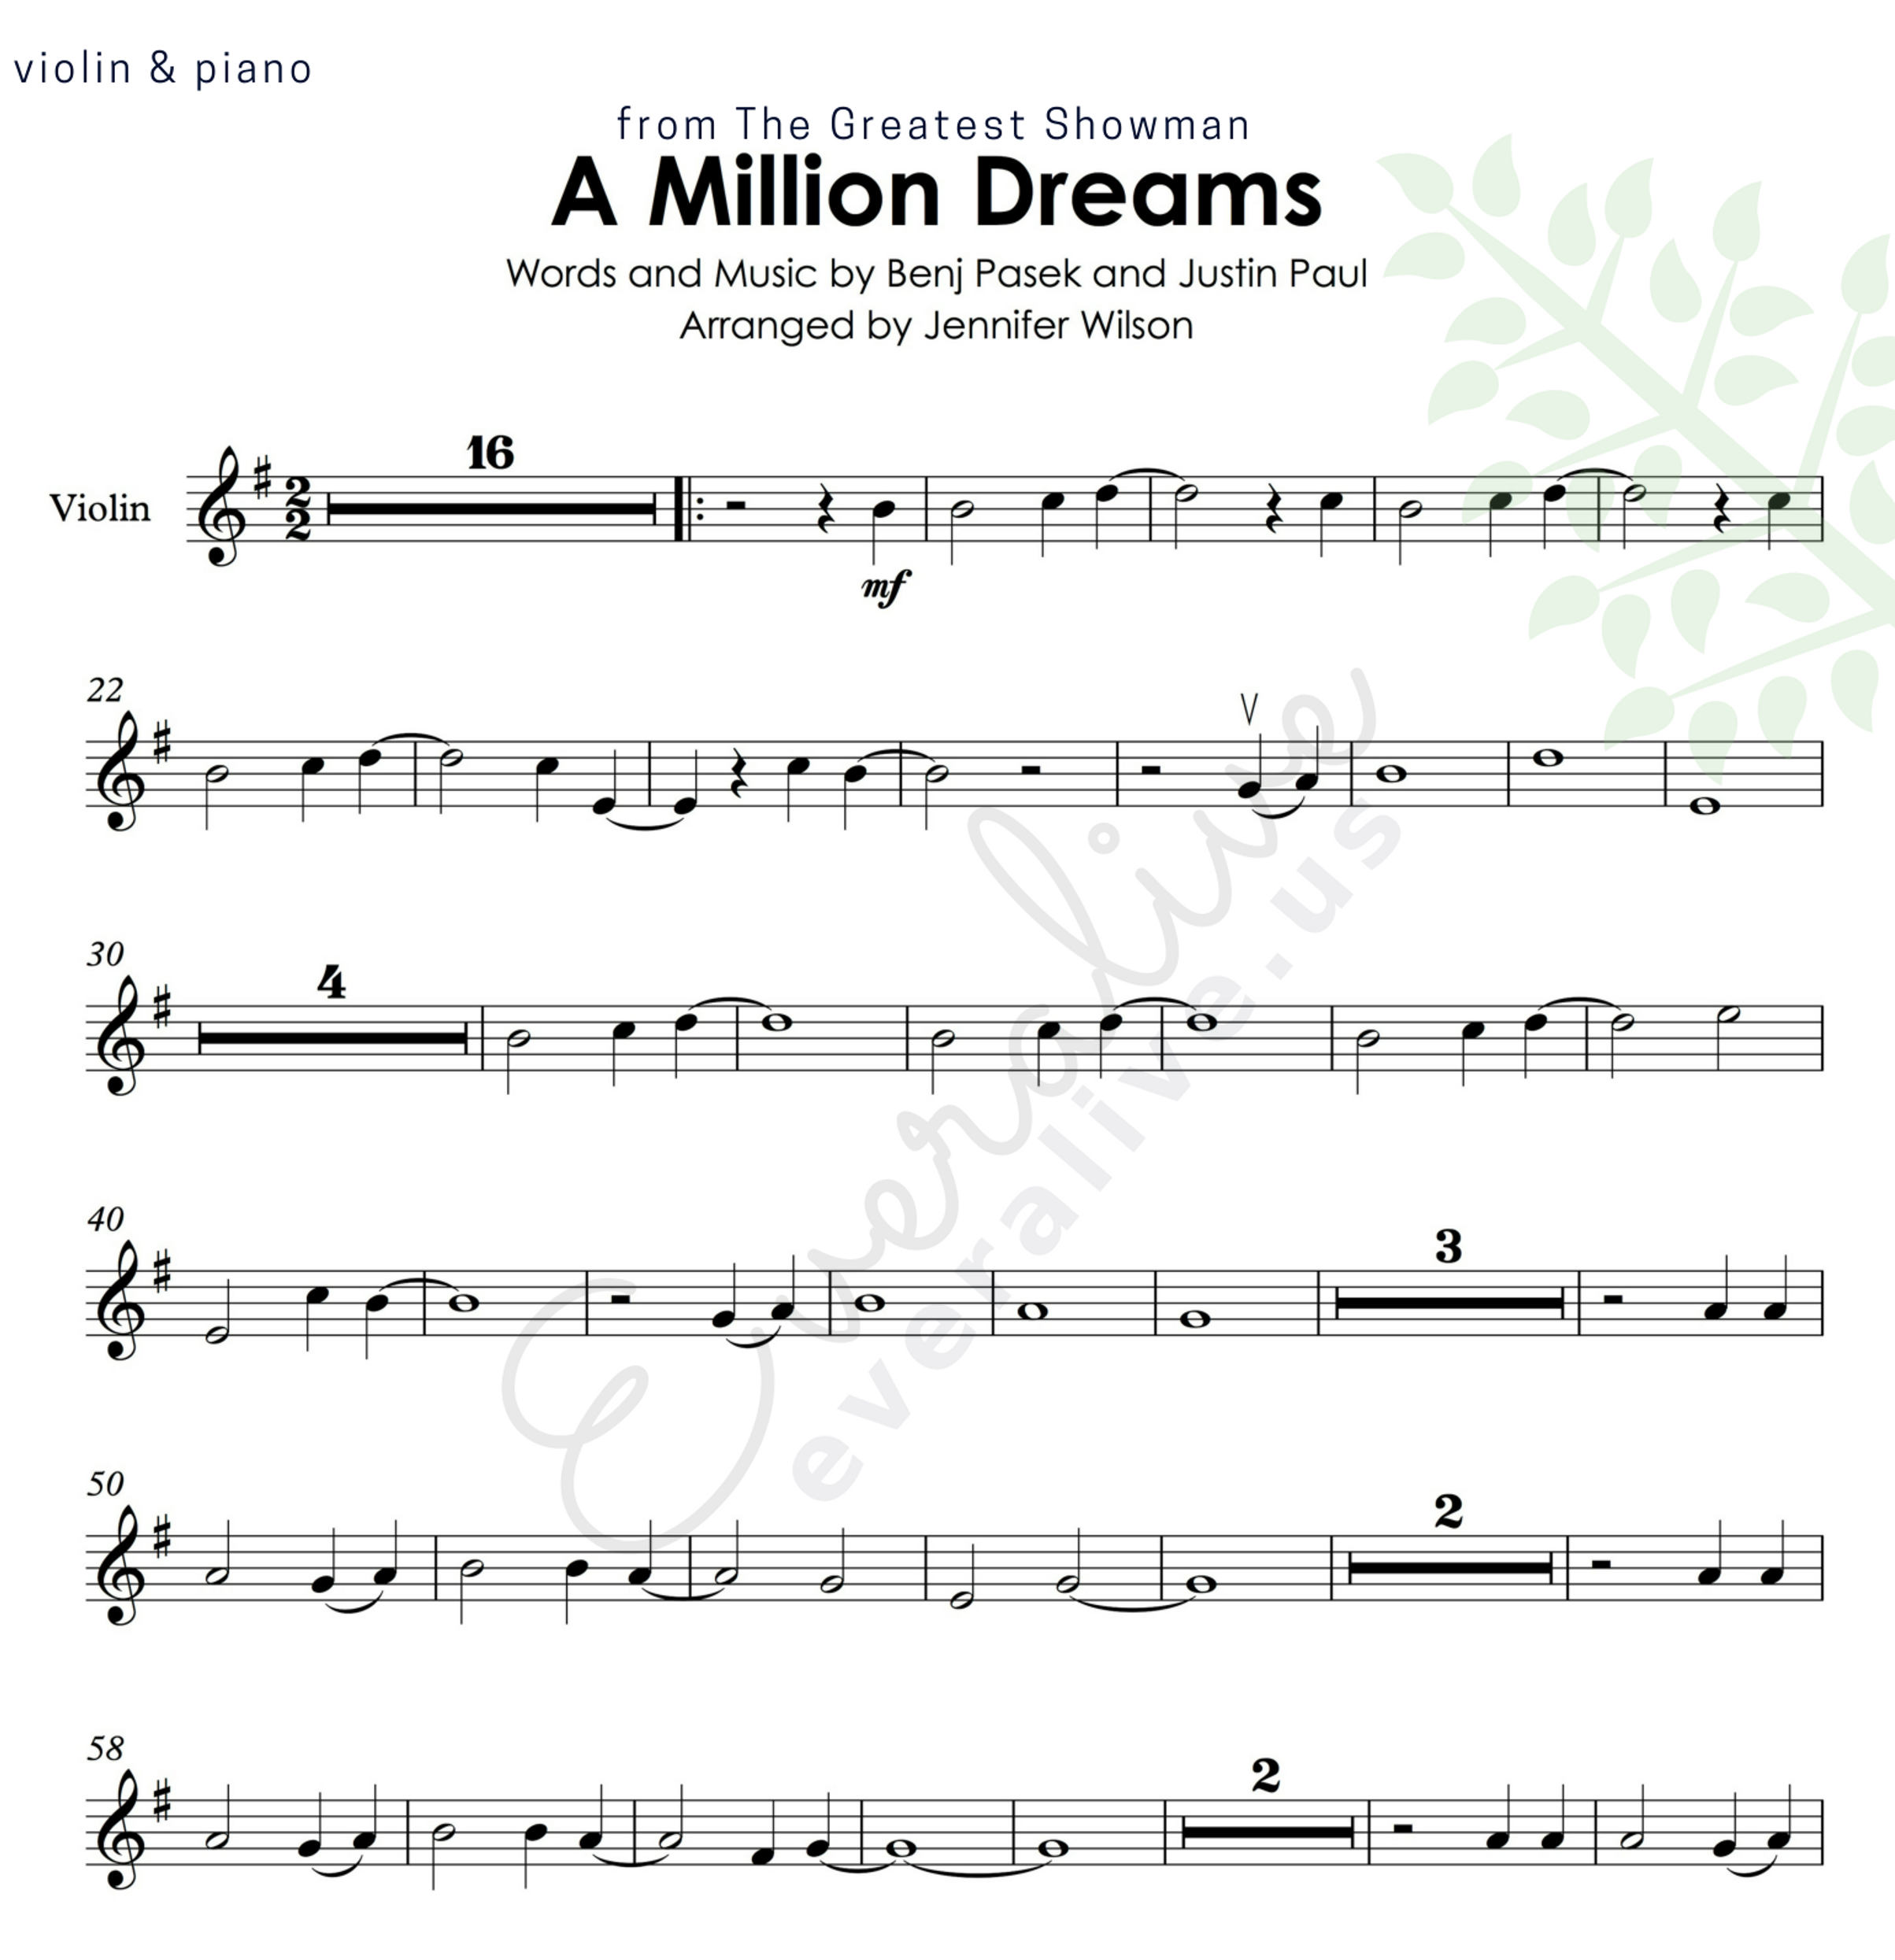 A Million Dreams From The Greatest Showman Easy Violin And Piano Arrangement Violin Amilliondream Digital Sheet Music Violin Sheet Music Choral Sheet Music